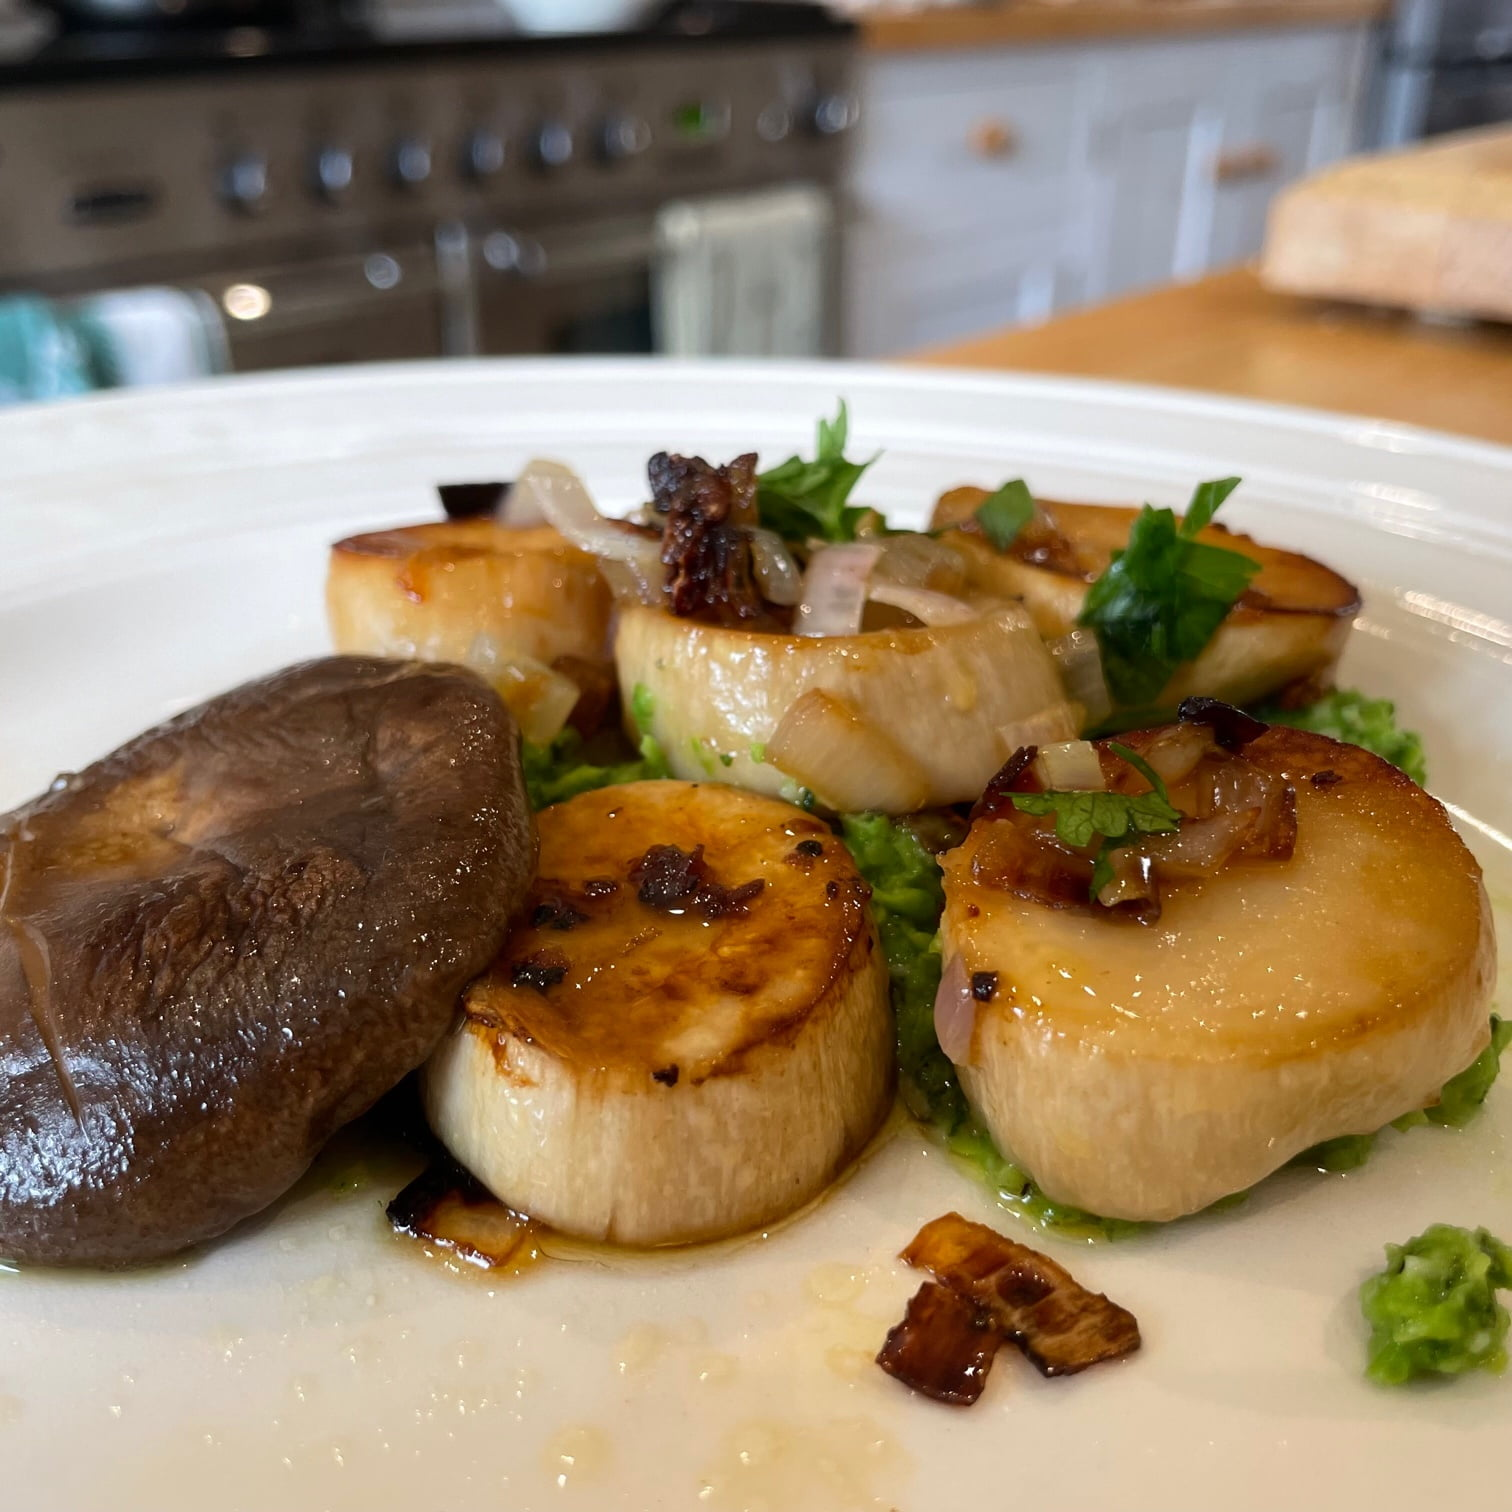 King Oyster Mushroom Scallops with Pea Puree